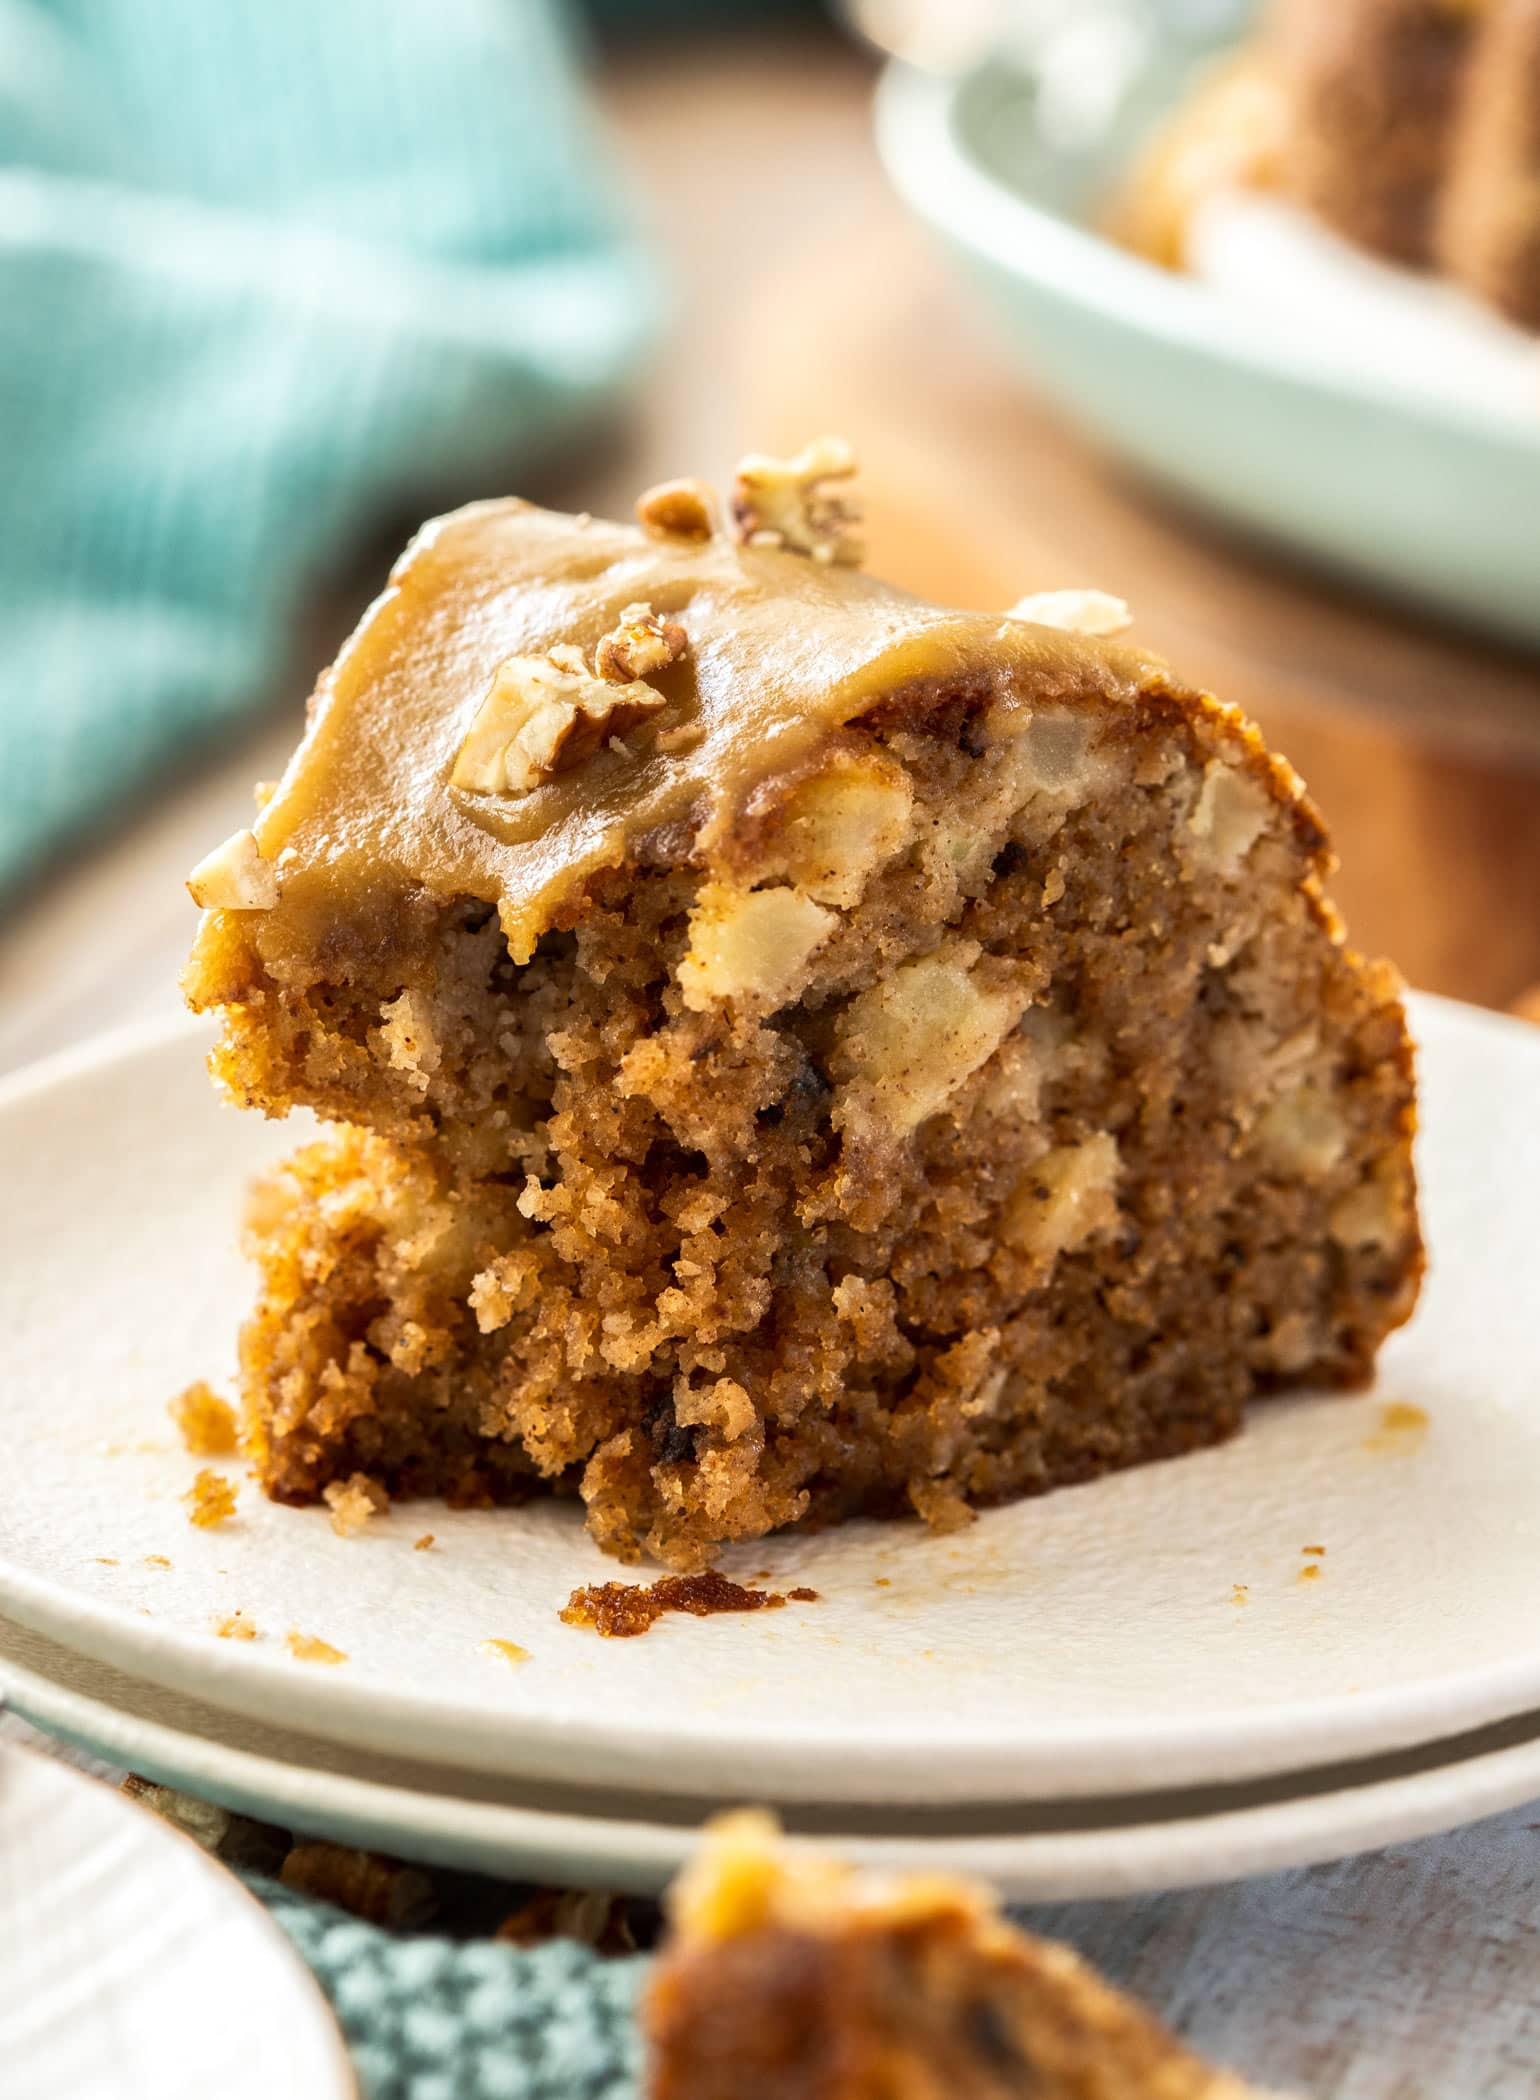 Closeup shot of a slice of apple bundt cake with a bite taken out of it